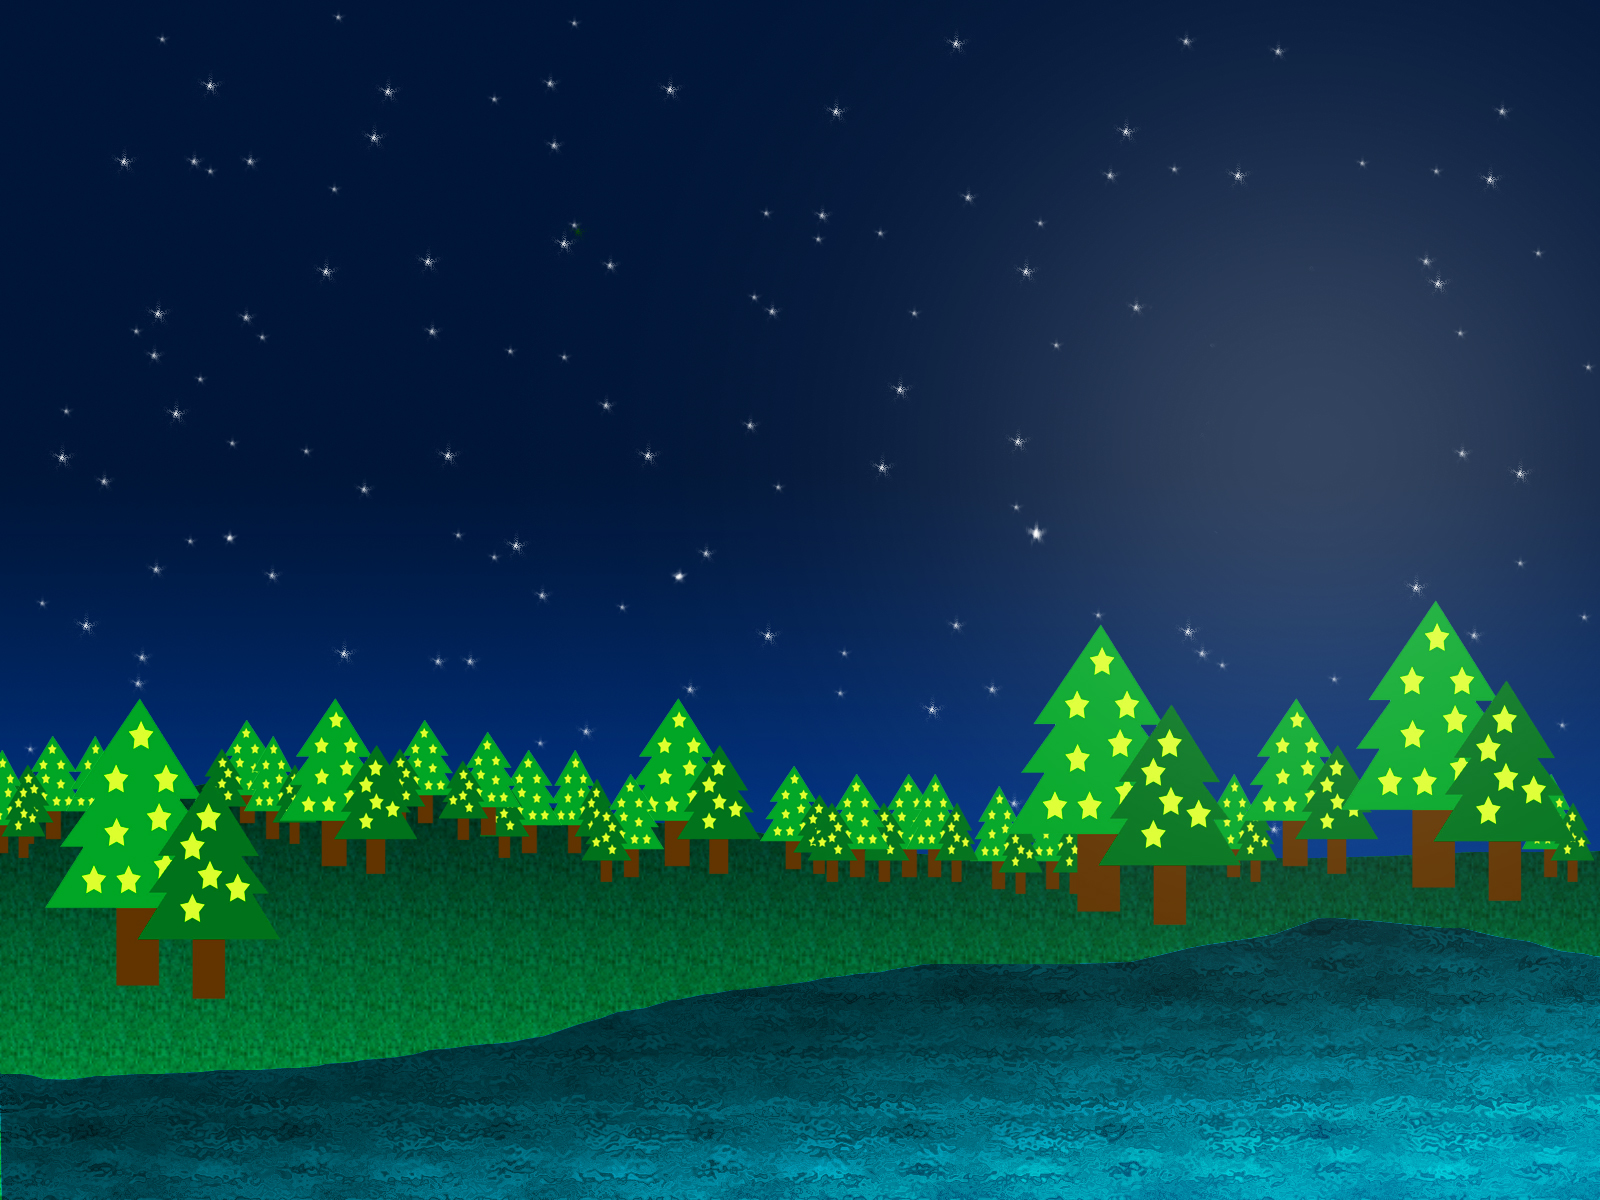 Free Sky Cliparts Christmas, Download Free Clip Art, Free.